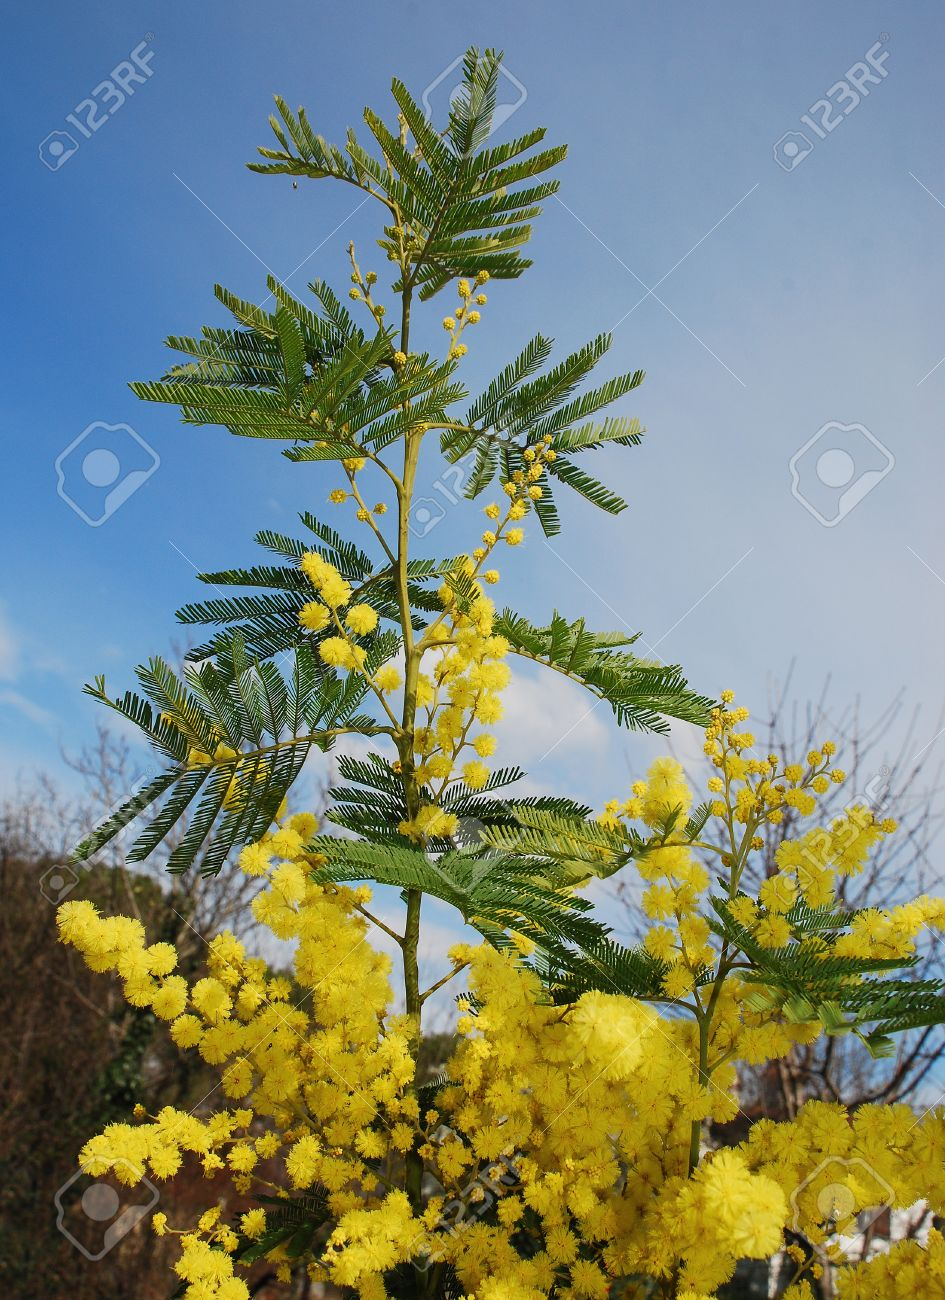 The Yellow Flowers Of The Mimosa Also Known As Acacia Dealbata